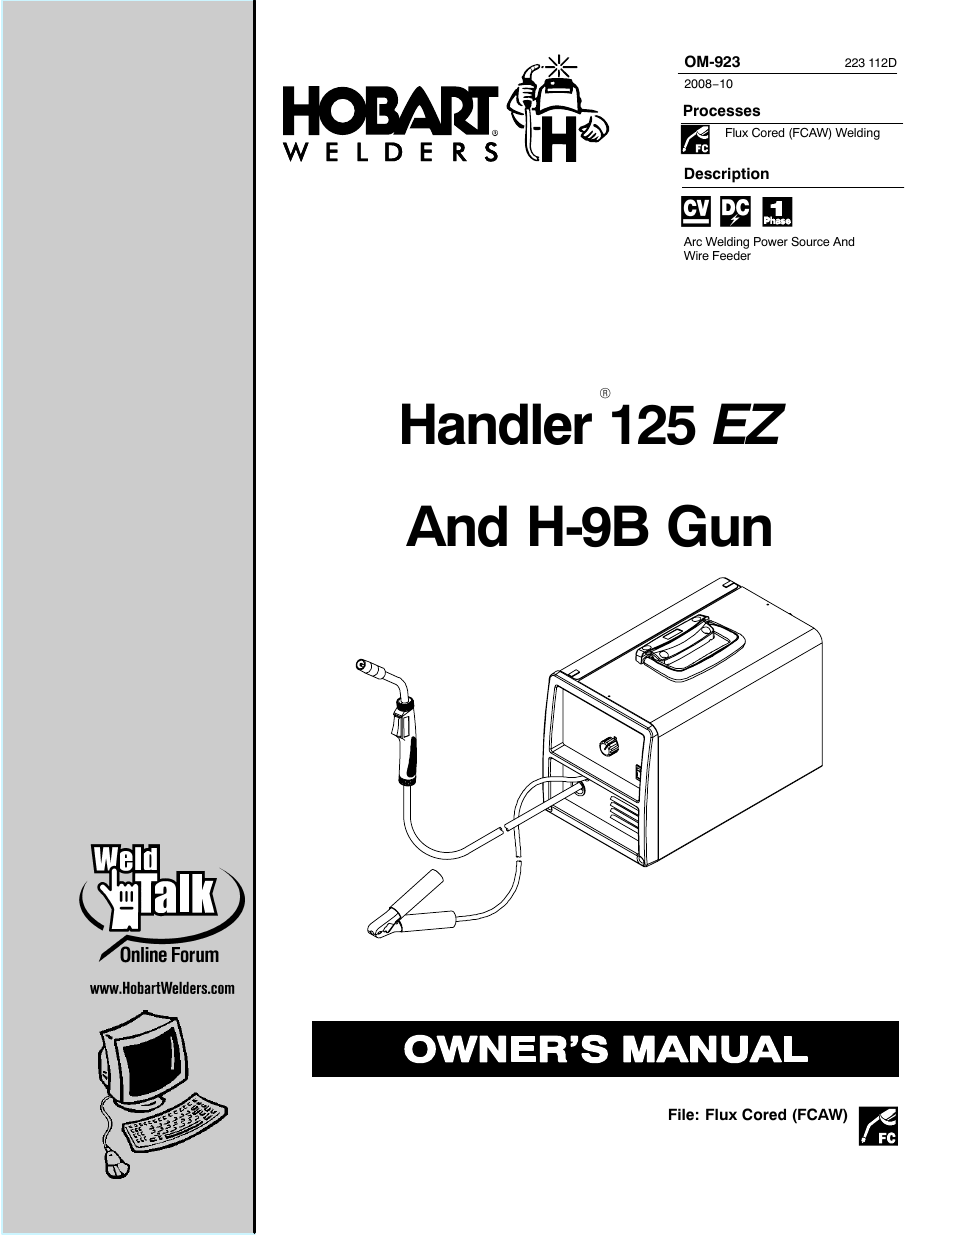 hobart welding products handler 125 ez user manual